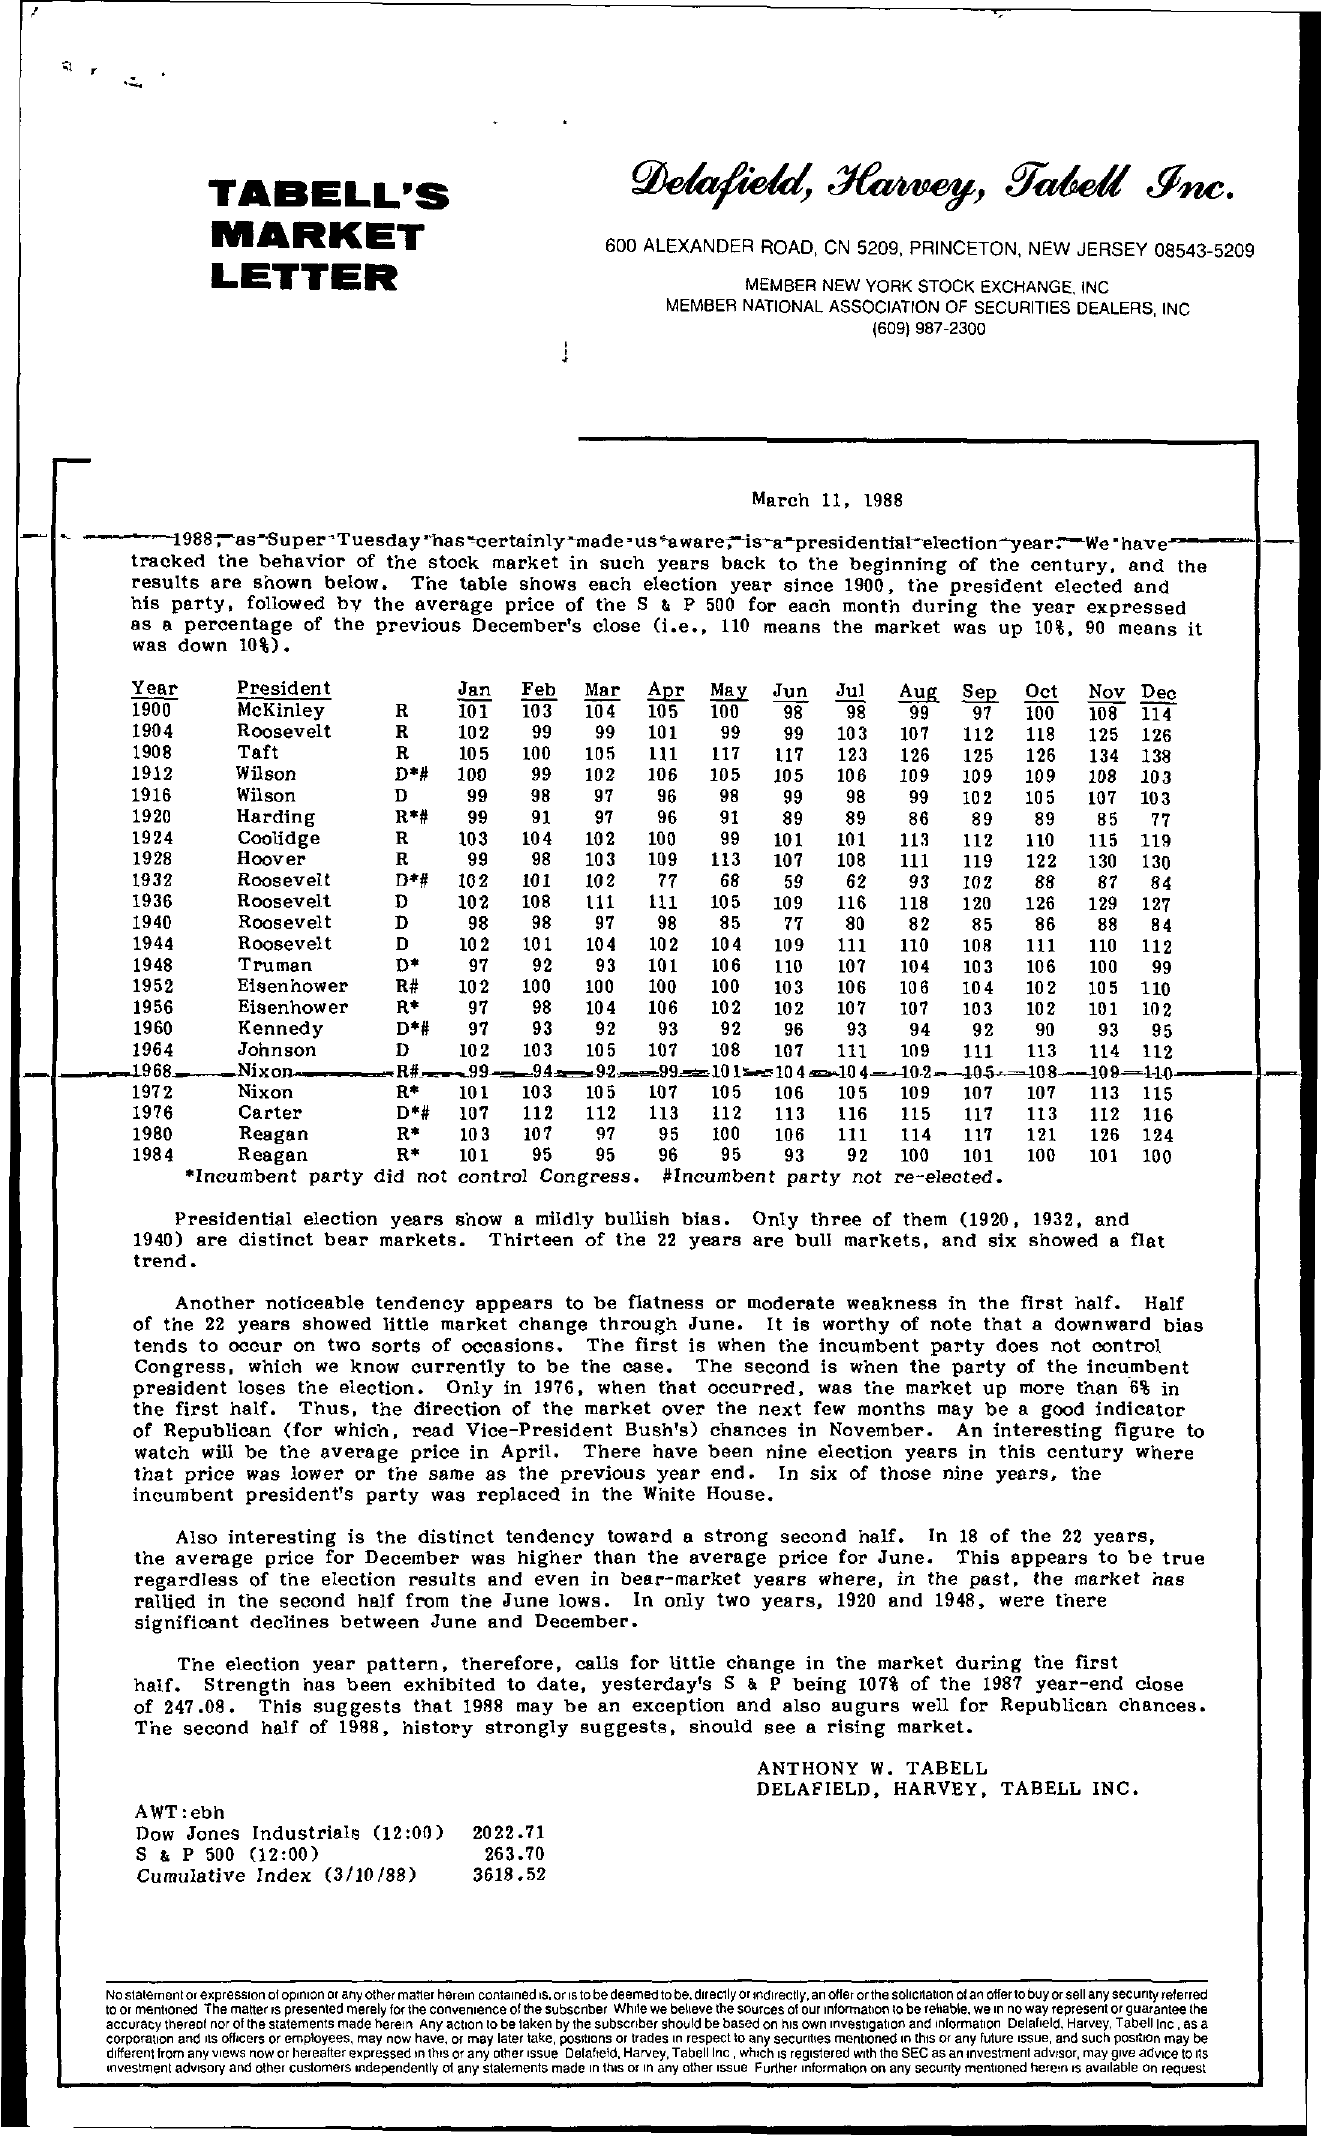 Tabell's Market Letter - March 11, 1988